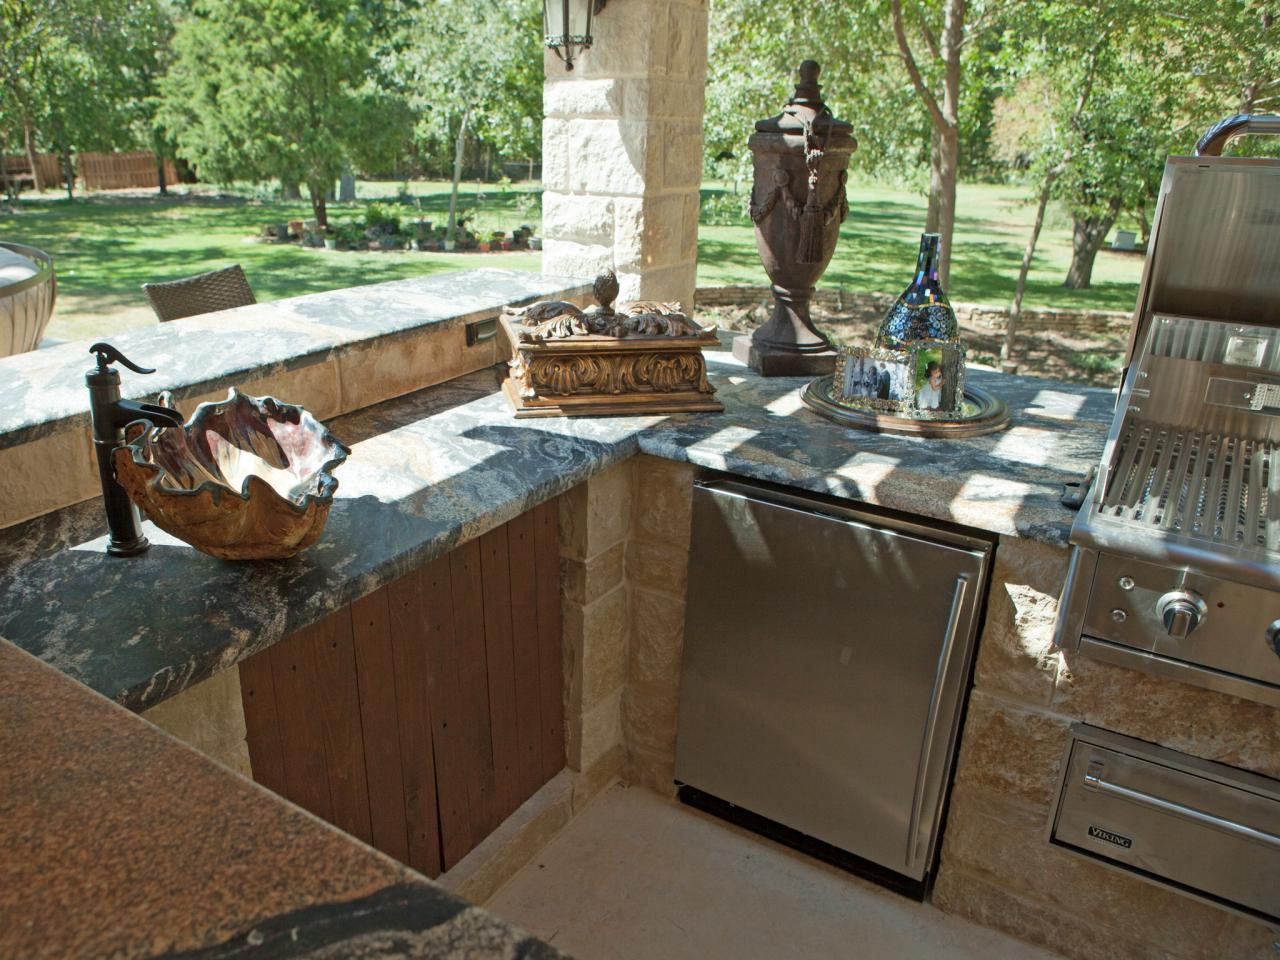 Outdoor Kitchen Designs Custom Outdoor Kitchen Design Ideas Pictures Tips & Expert Advice  Hgtv Inspiration